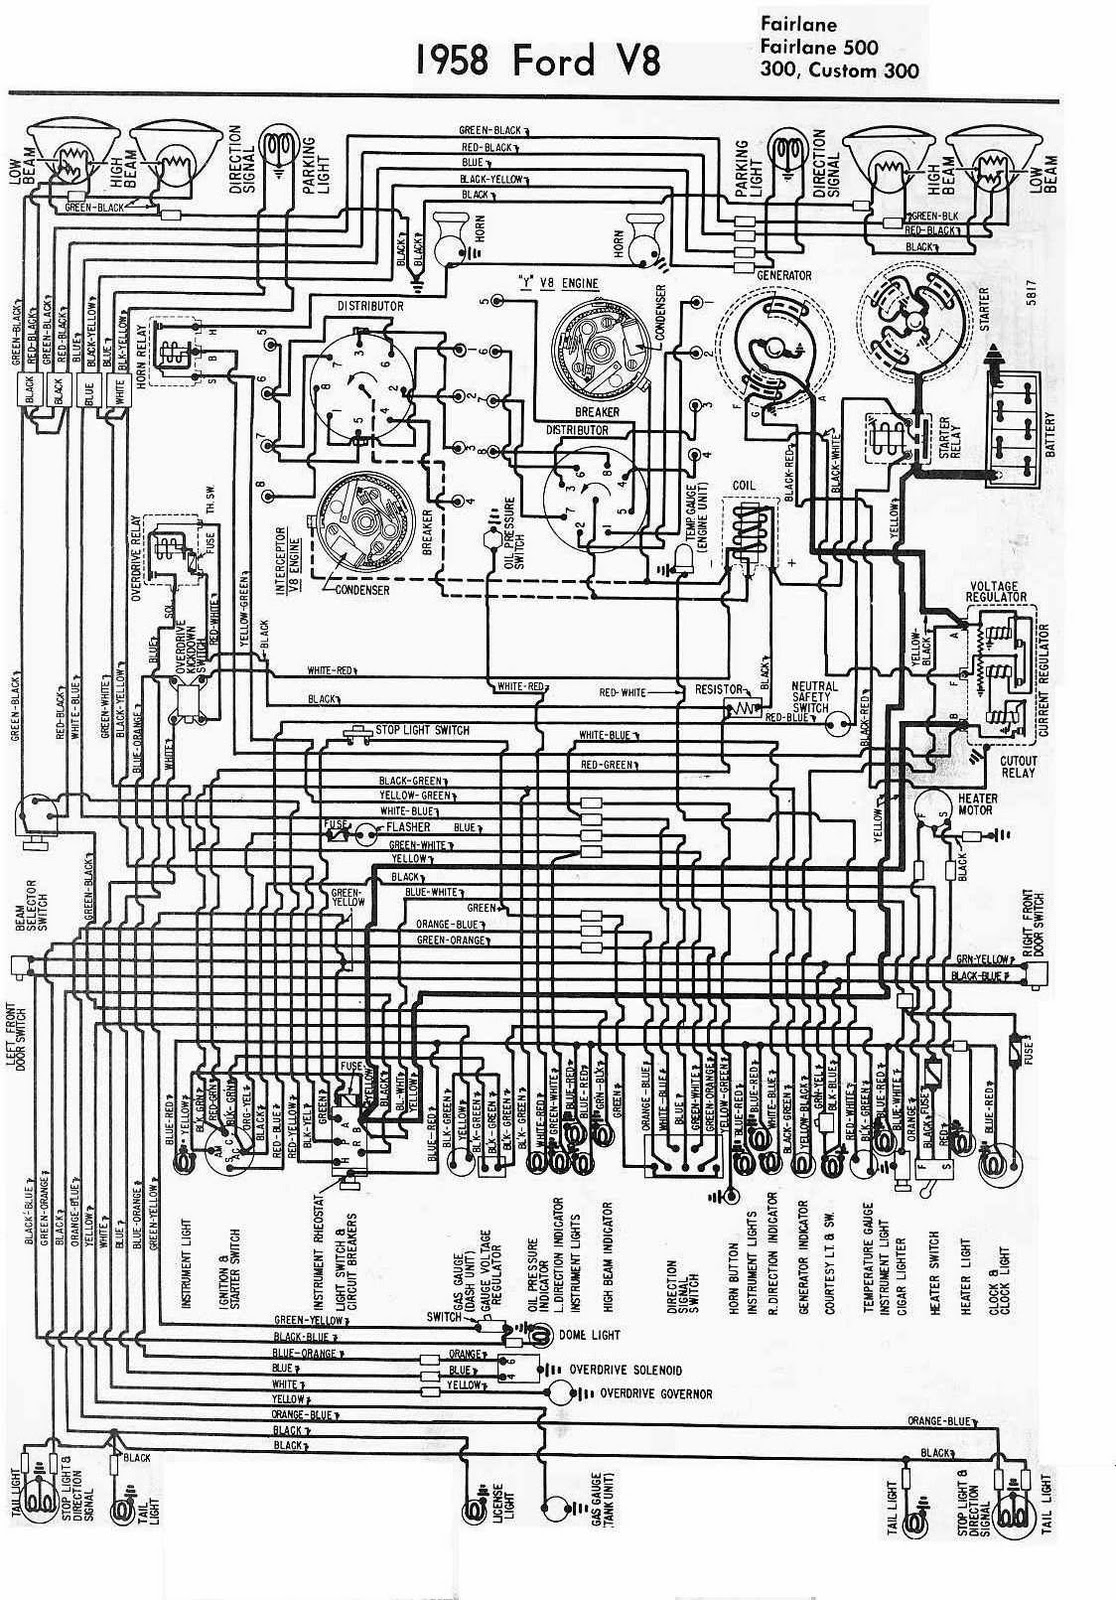 Hqdefault together with Honda Civic Fuse Box Diagram Graphic Facile Snapshot More Honda Civic Fuse Box Diagram X further Bus Diagramr besides Dodge Ram Radio Wiring Diagram Wiring Diagrams Intended For Ford F Radio Wiring Diagram besides Hqdefault. on buick box electrical diagrams schematics jpg